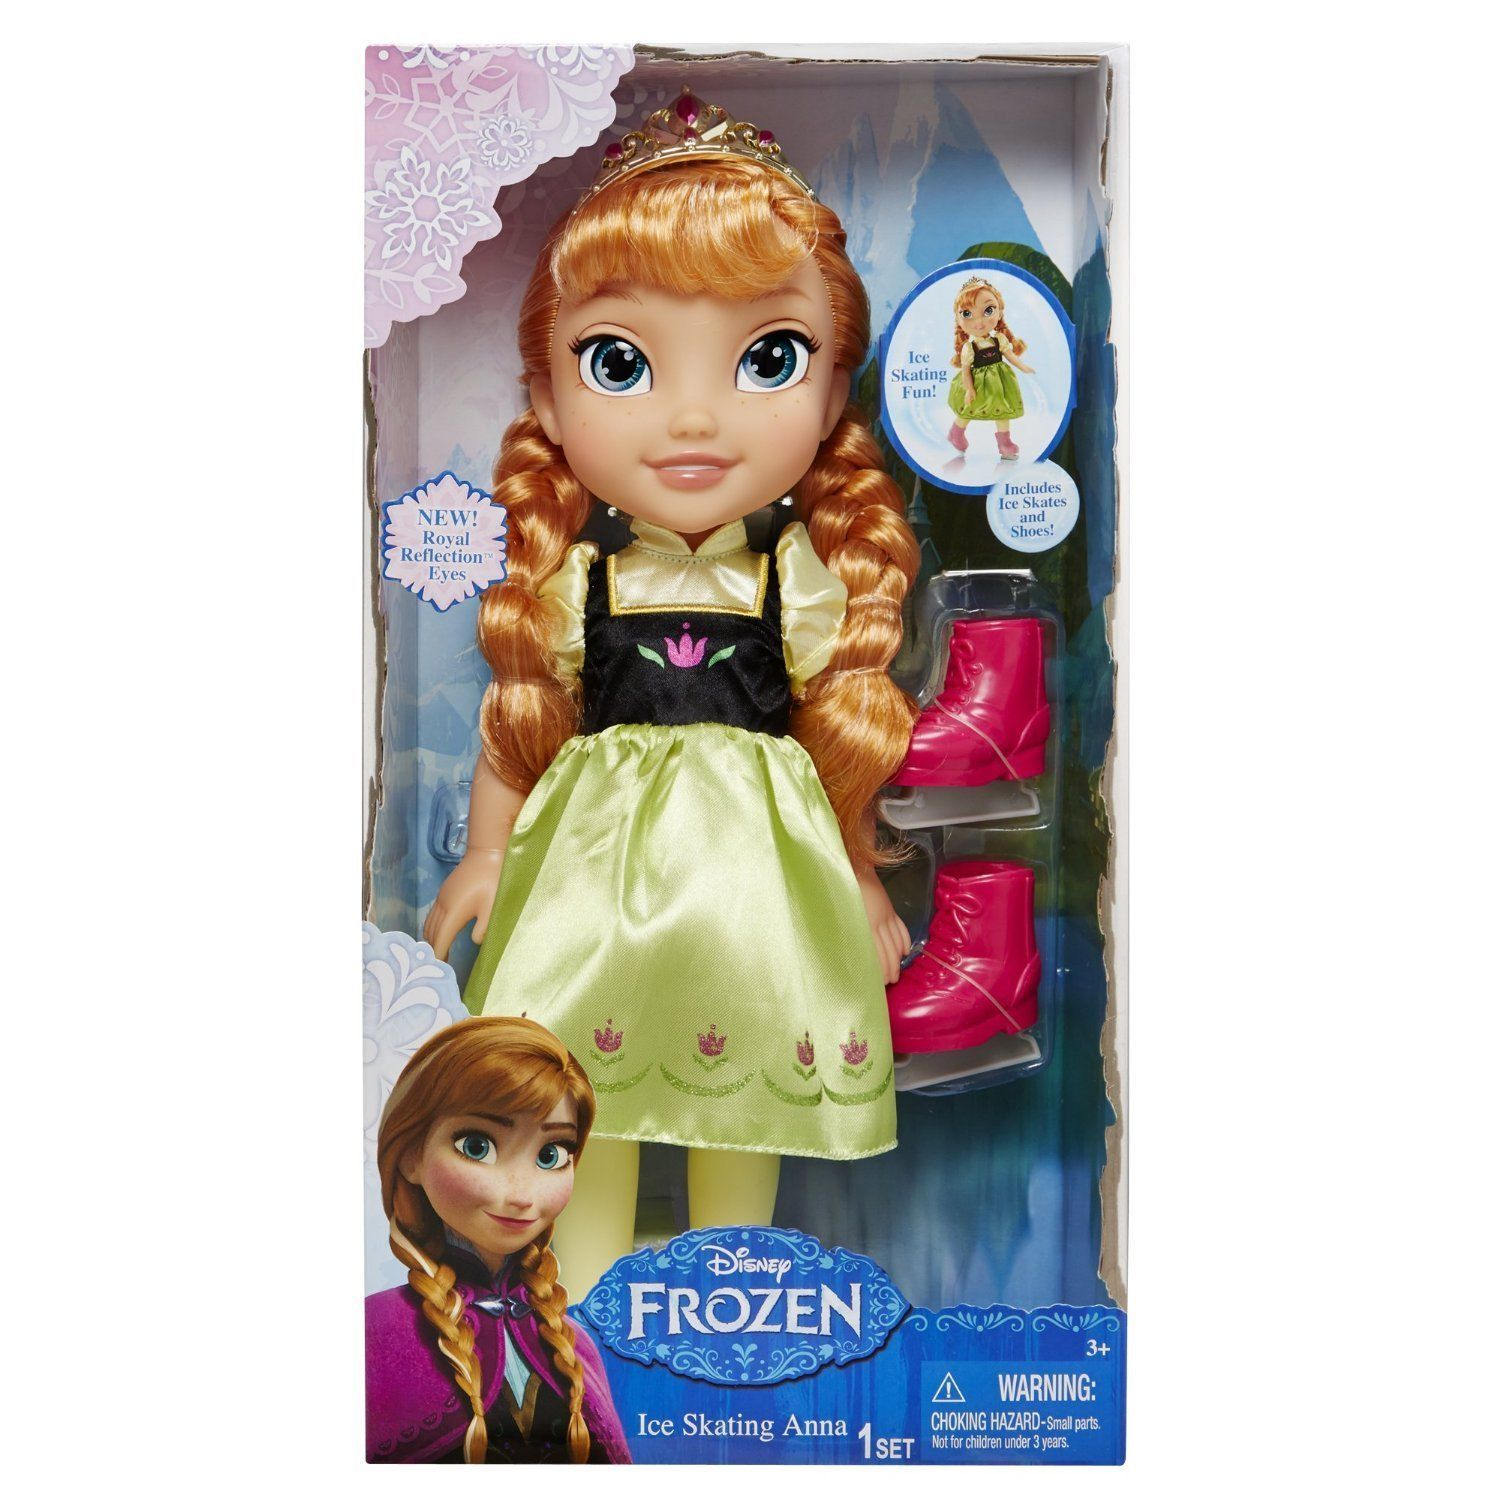 Image 2 of Ice Skating Princess Anna Frozen Toddler Doll Disney, 3+ Years